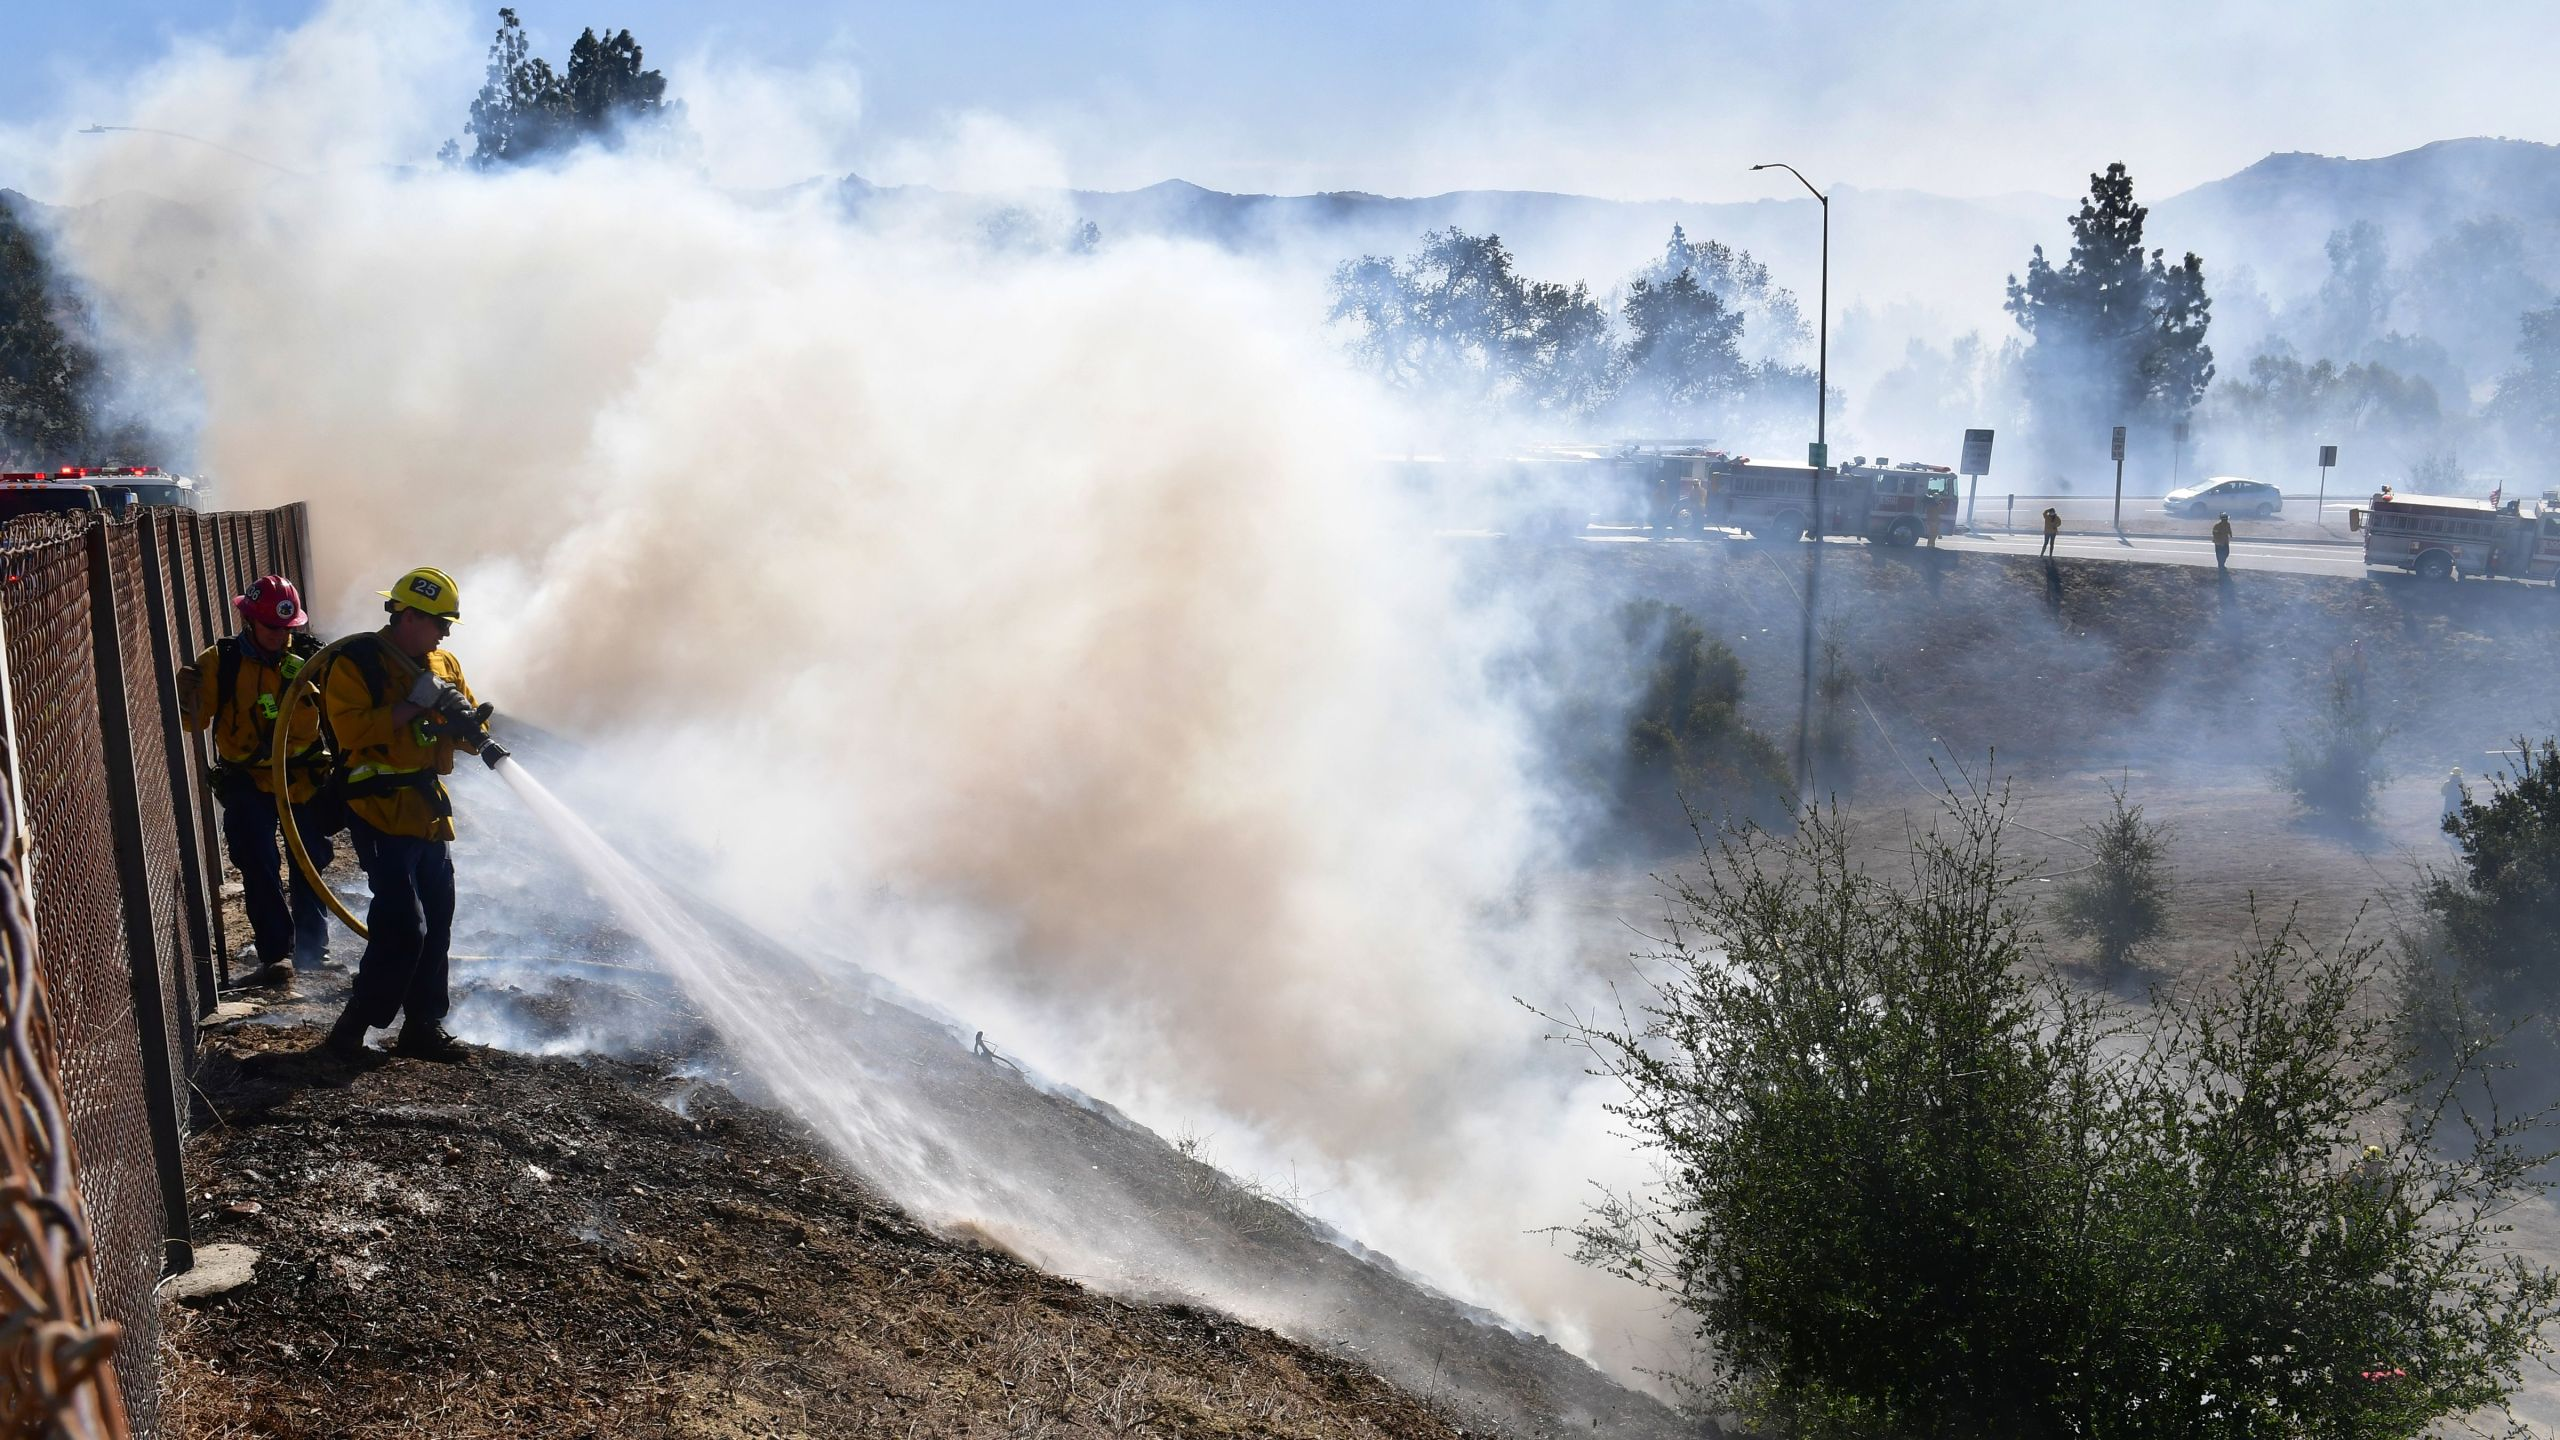 A firefighter sprays water on charred hillside near homes and the 118 Freeway in Simi Valley on Oct. 30, 2019. (Credit: Frederic J. Brown / AFP / Getty Images)